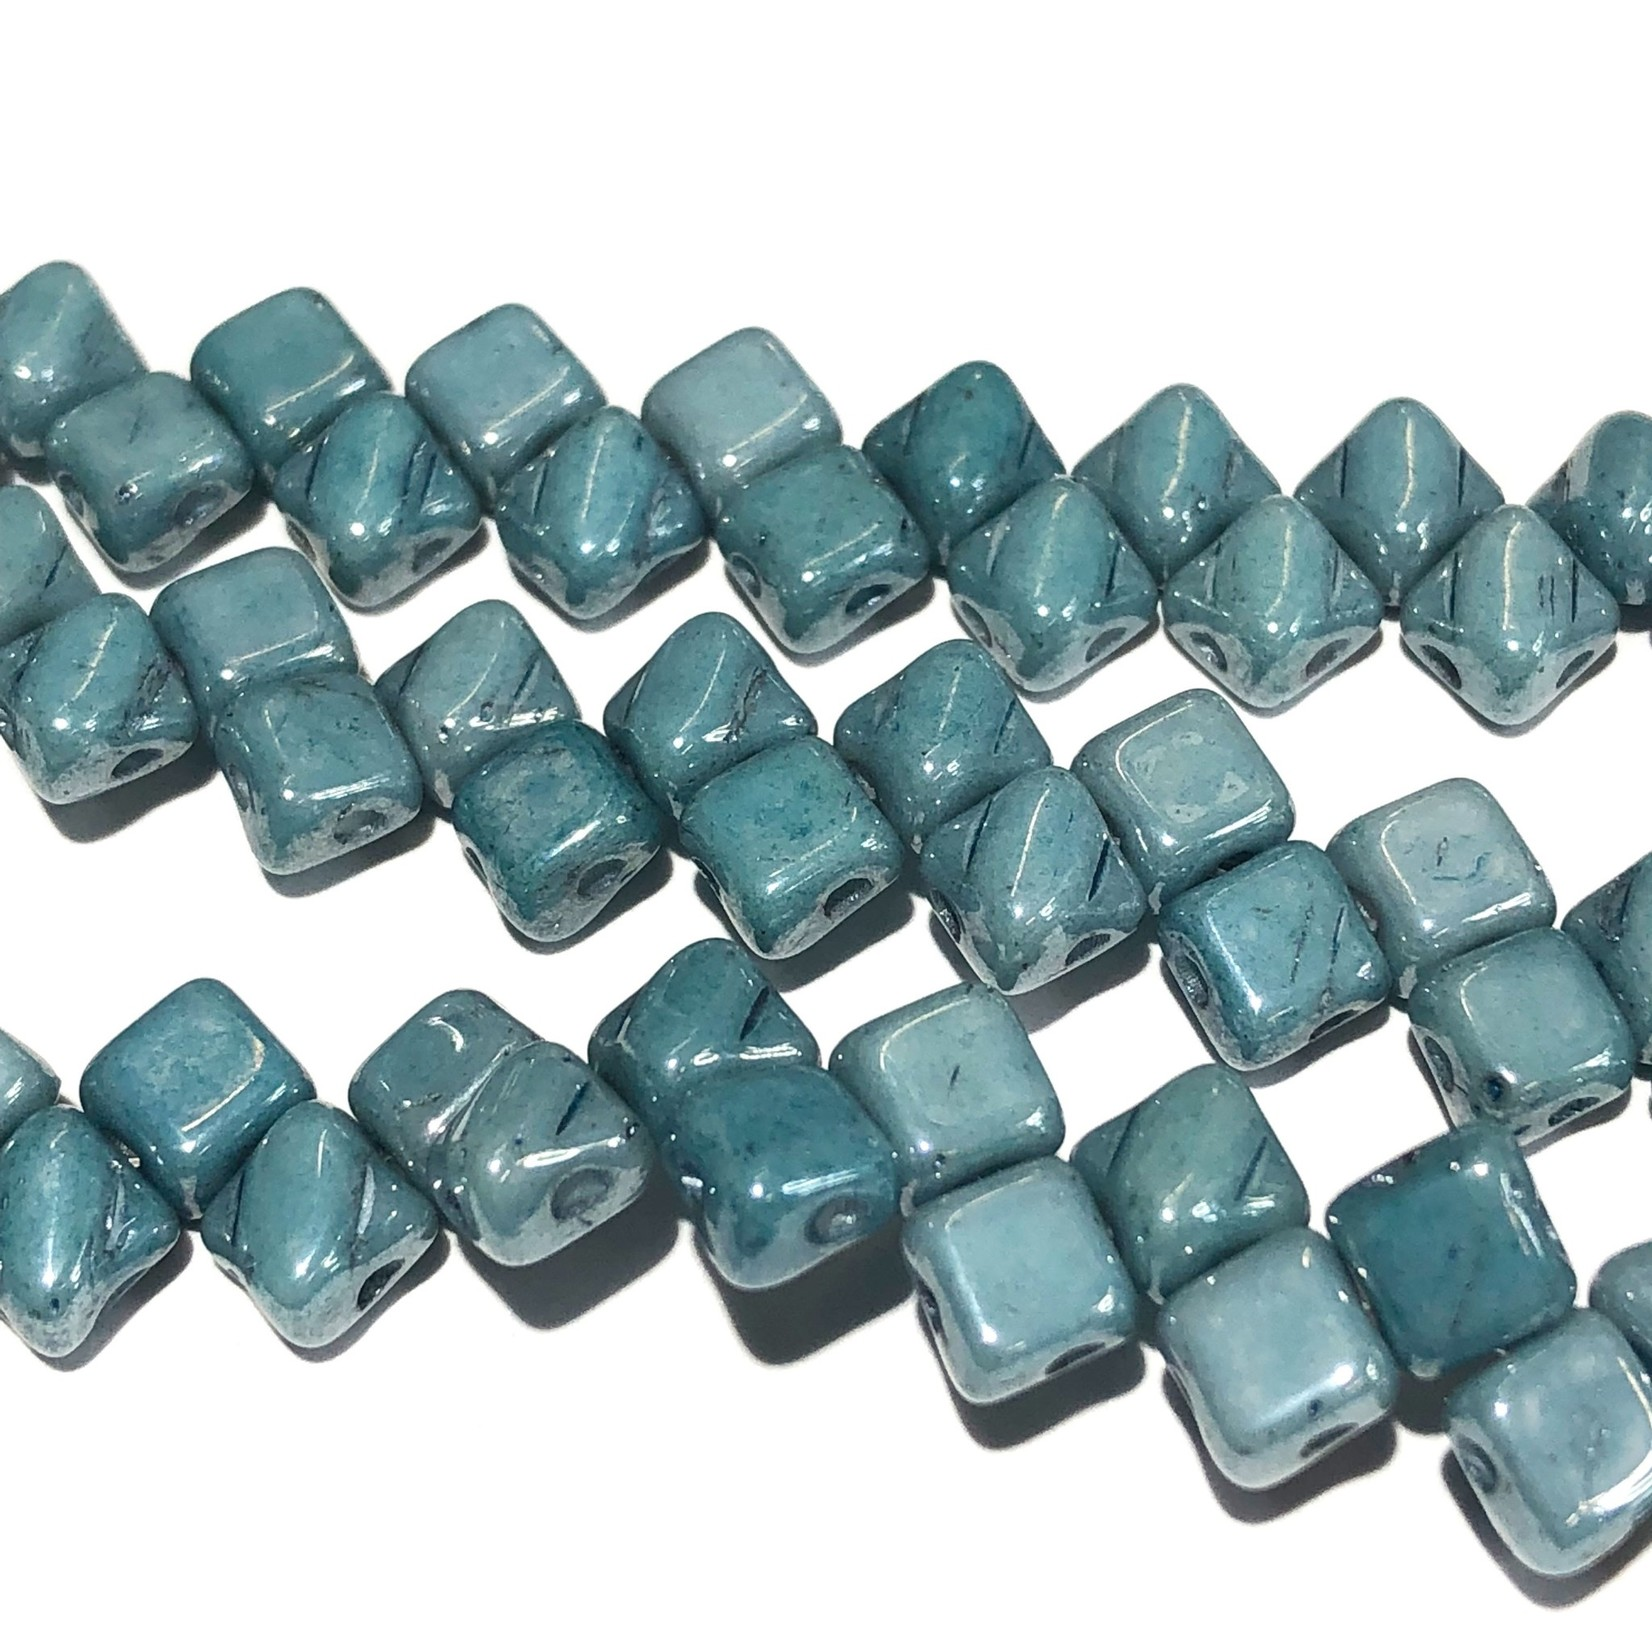 2-Hole SILKY Bead Blue Luster 40pcs 5mm